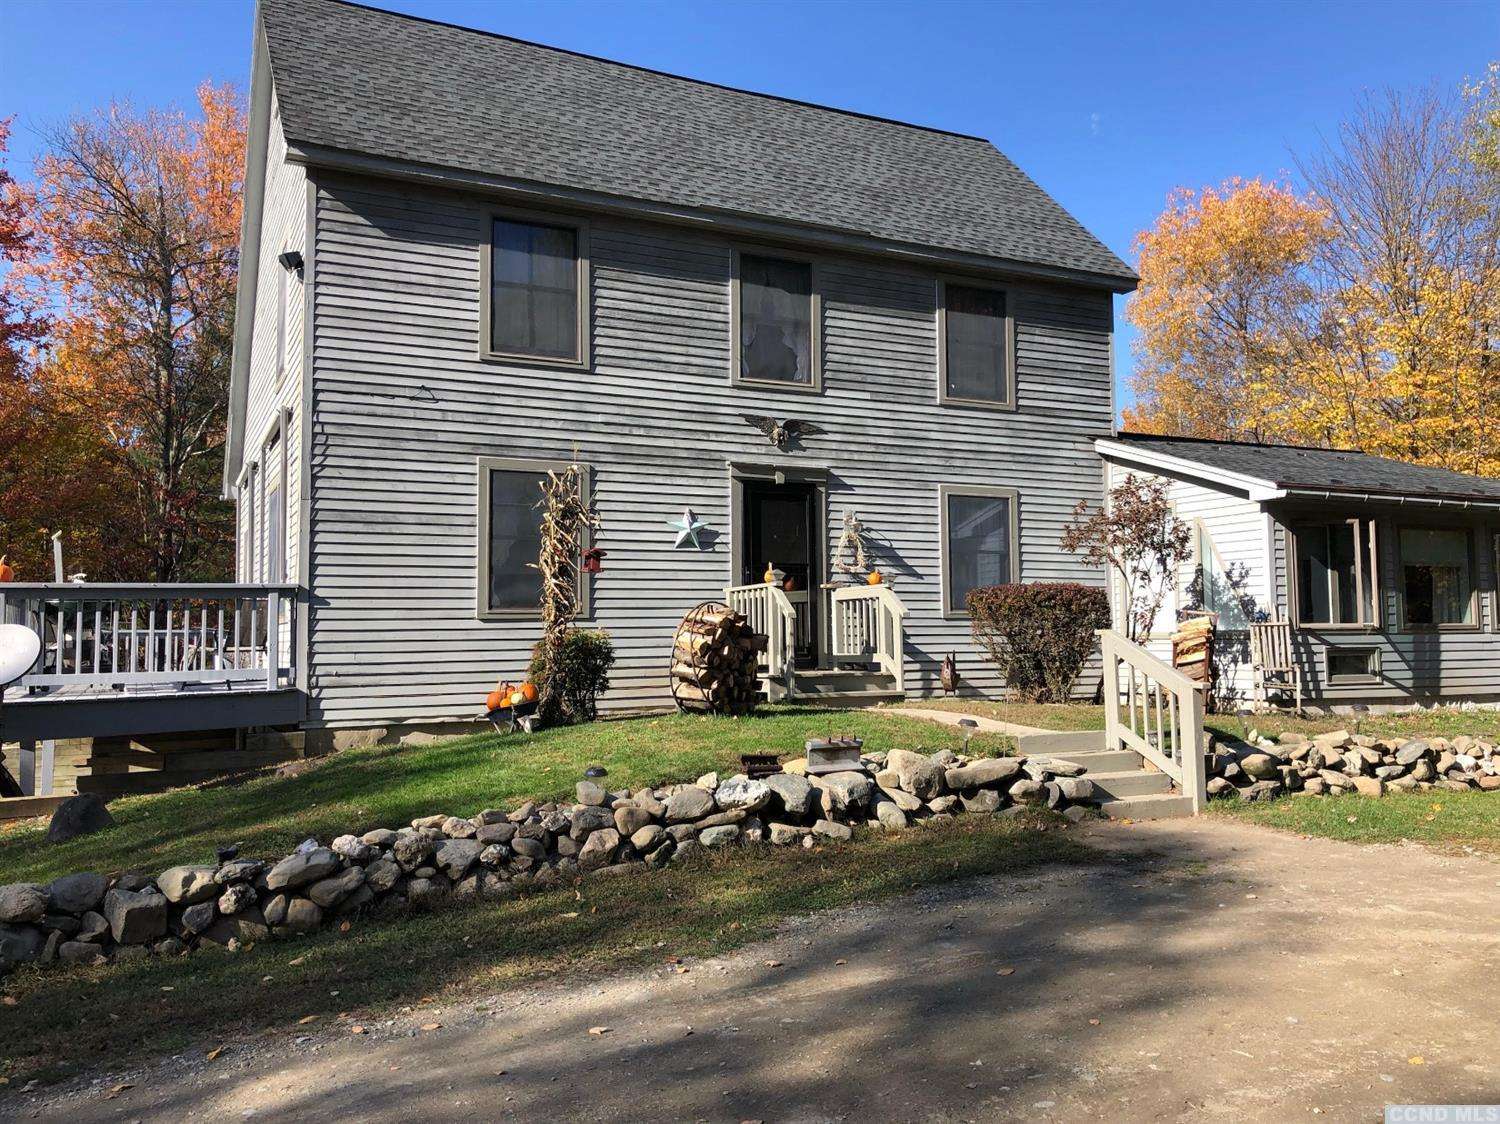 Private tucked away salt box home sitting on 4.97 acres with wooded acres, wrap around deck, cathedral ceiling in great room, 3  bedrooms (current sunroom makes 4th bedroom), 2 baths, wood floors thru-out, skylights brings in even more natural light into space, walkout basement currently has workshop set up, wood stove & fireplace for those chilly days upon us, so close to Jiminy Peak Resort for long weekend of skiing.  Sweet chickens roam the property w/ coop a nice country feel. <br>Plus in ground pool ready for next Summer!